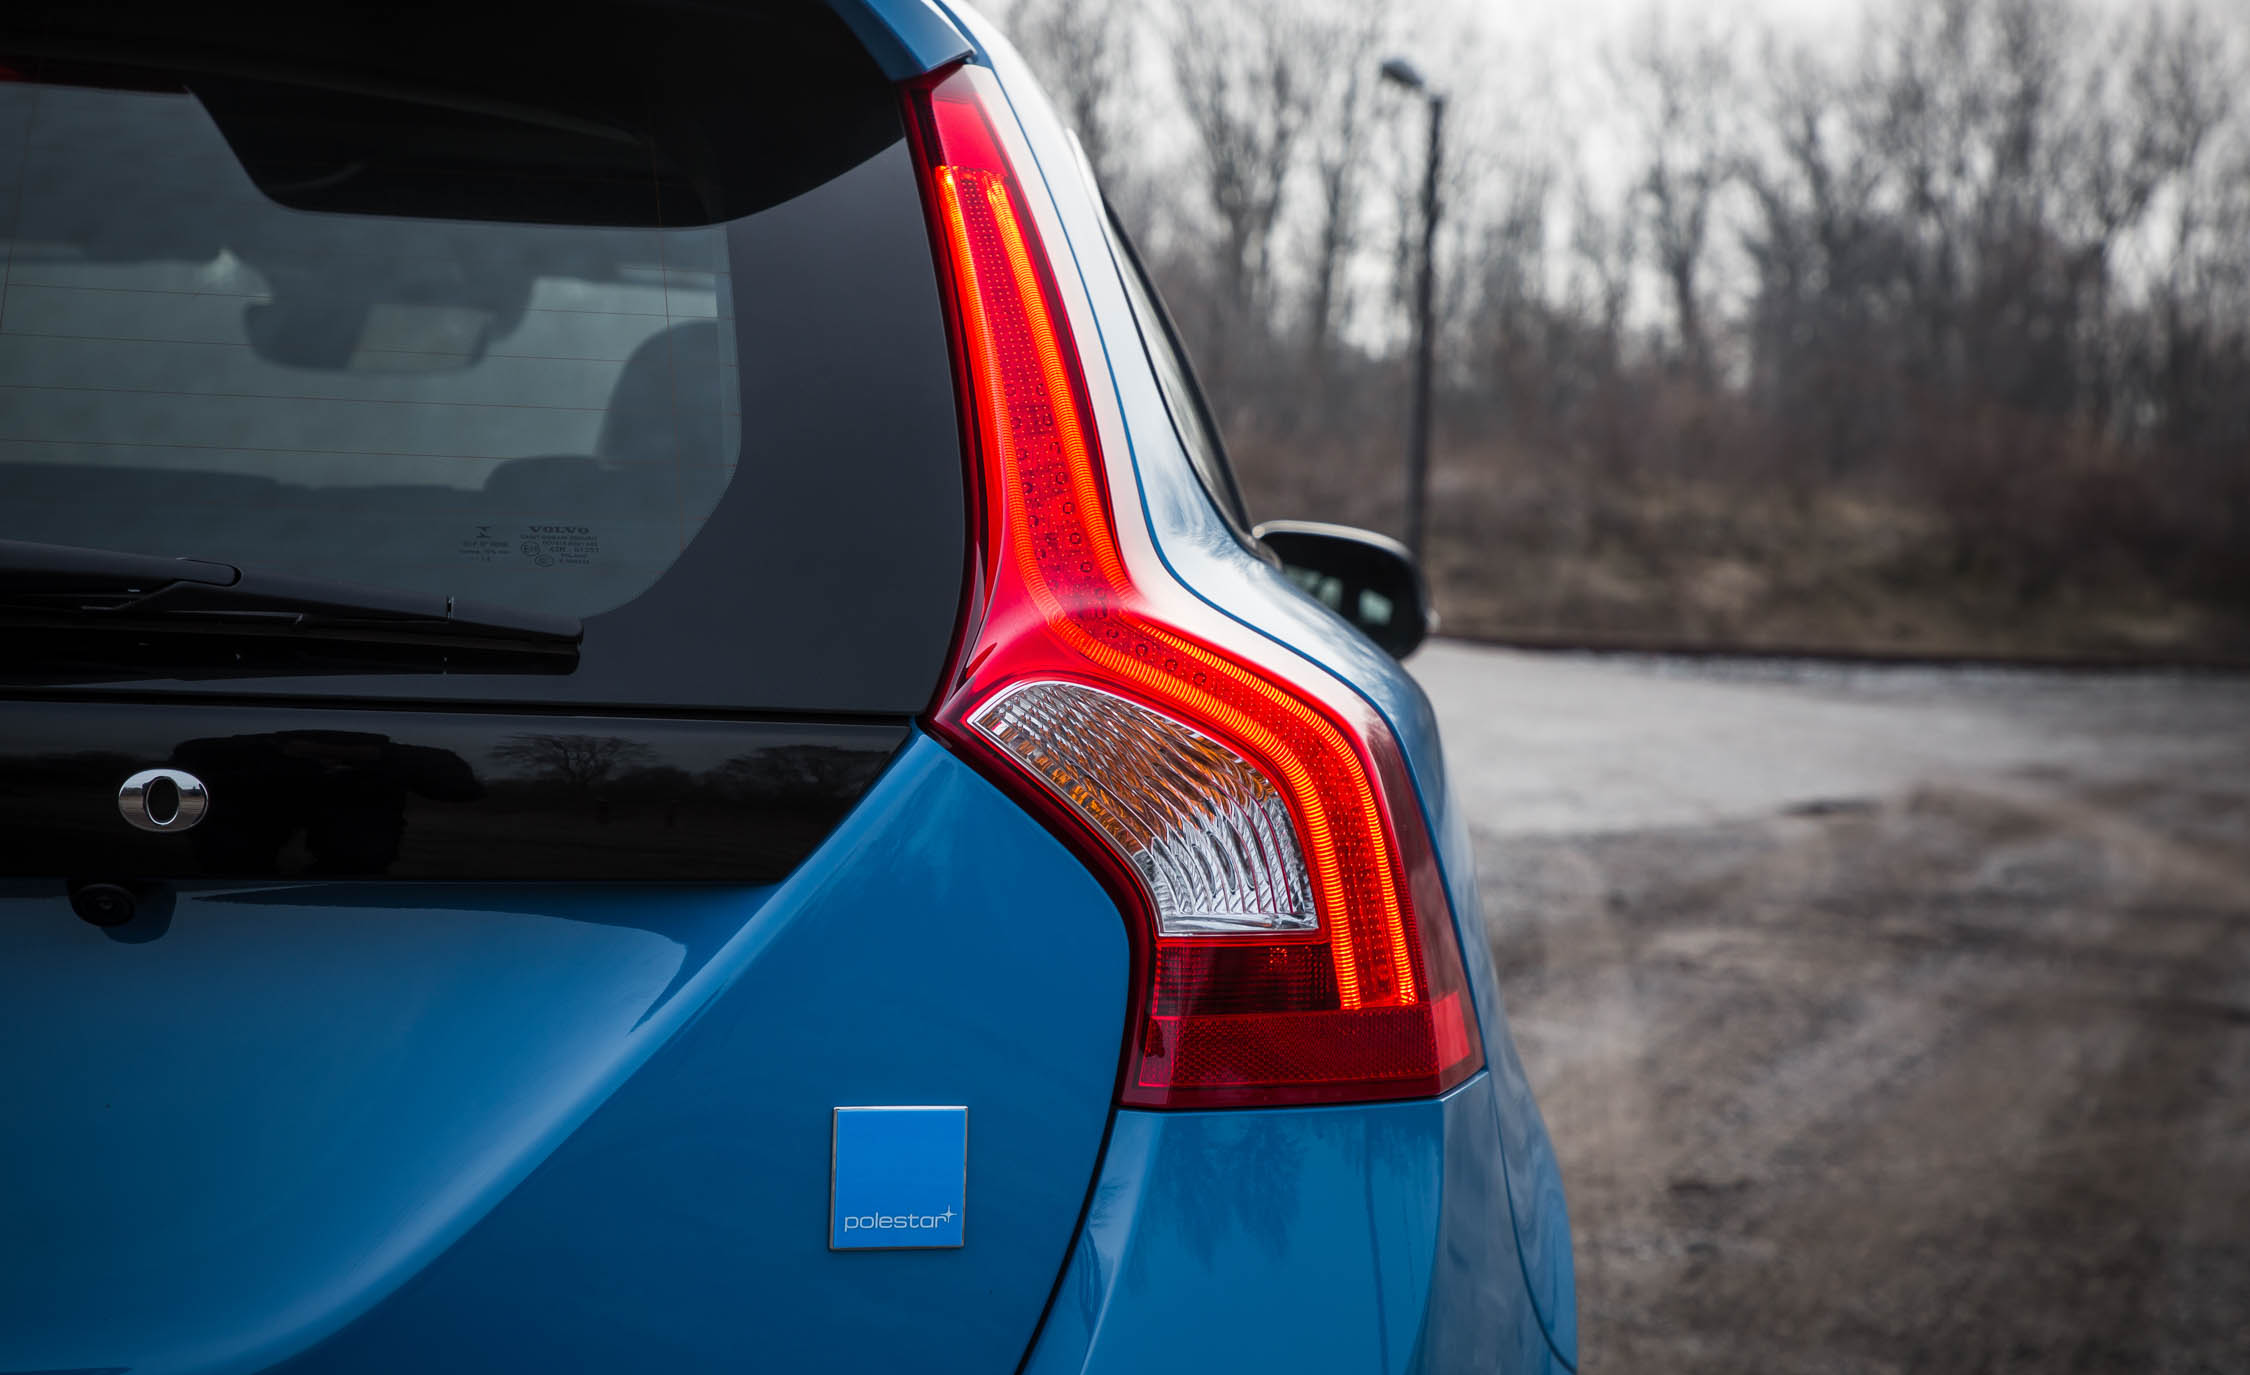 2017 Volvo V60 Polestar Exterior View Taillamp (Photo 14 of 53)